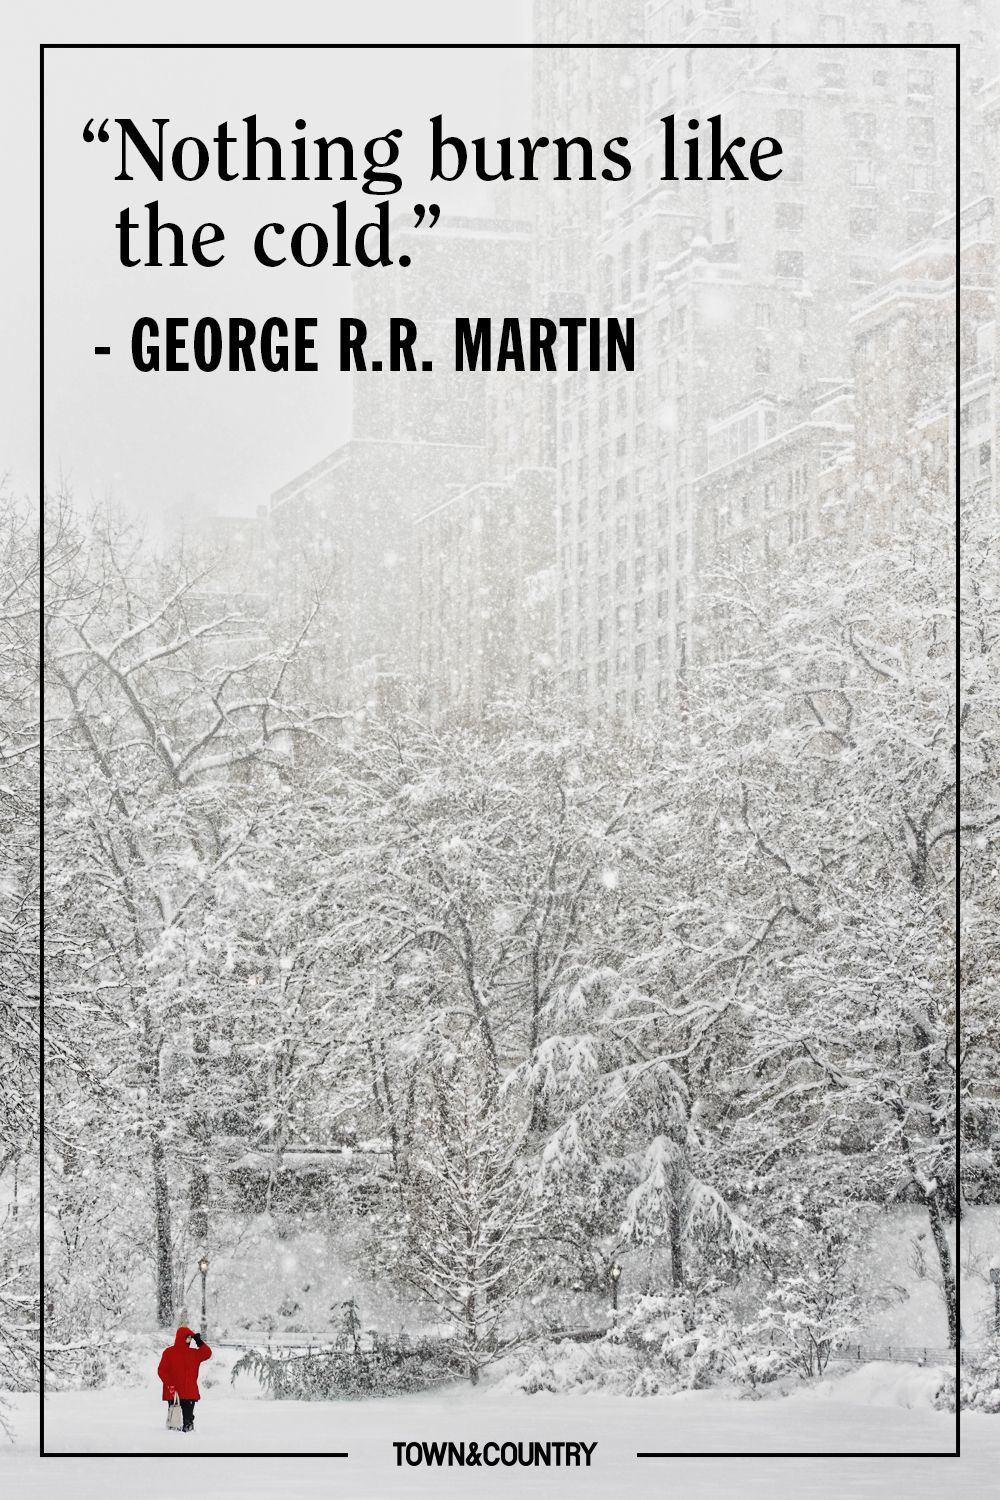 Winter Quotes 22 Best Winter Quotes   Cute Sayings About Snow & The Winter Season Winter Quotes